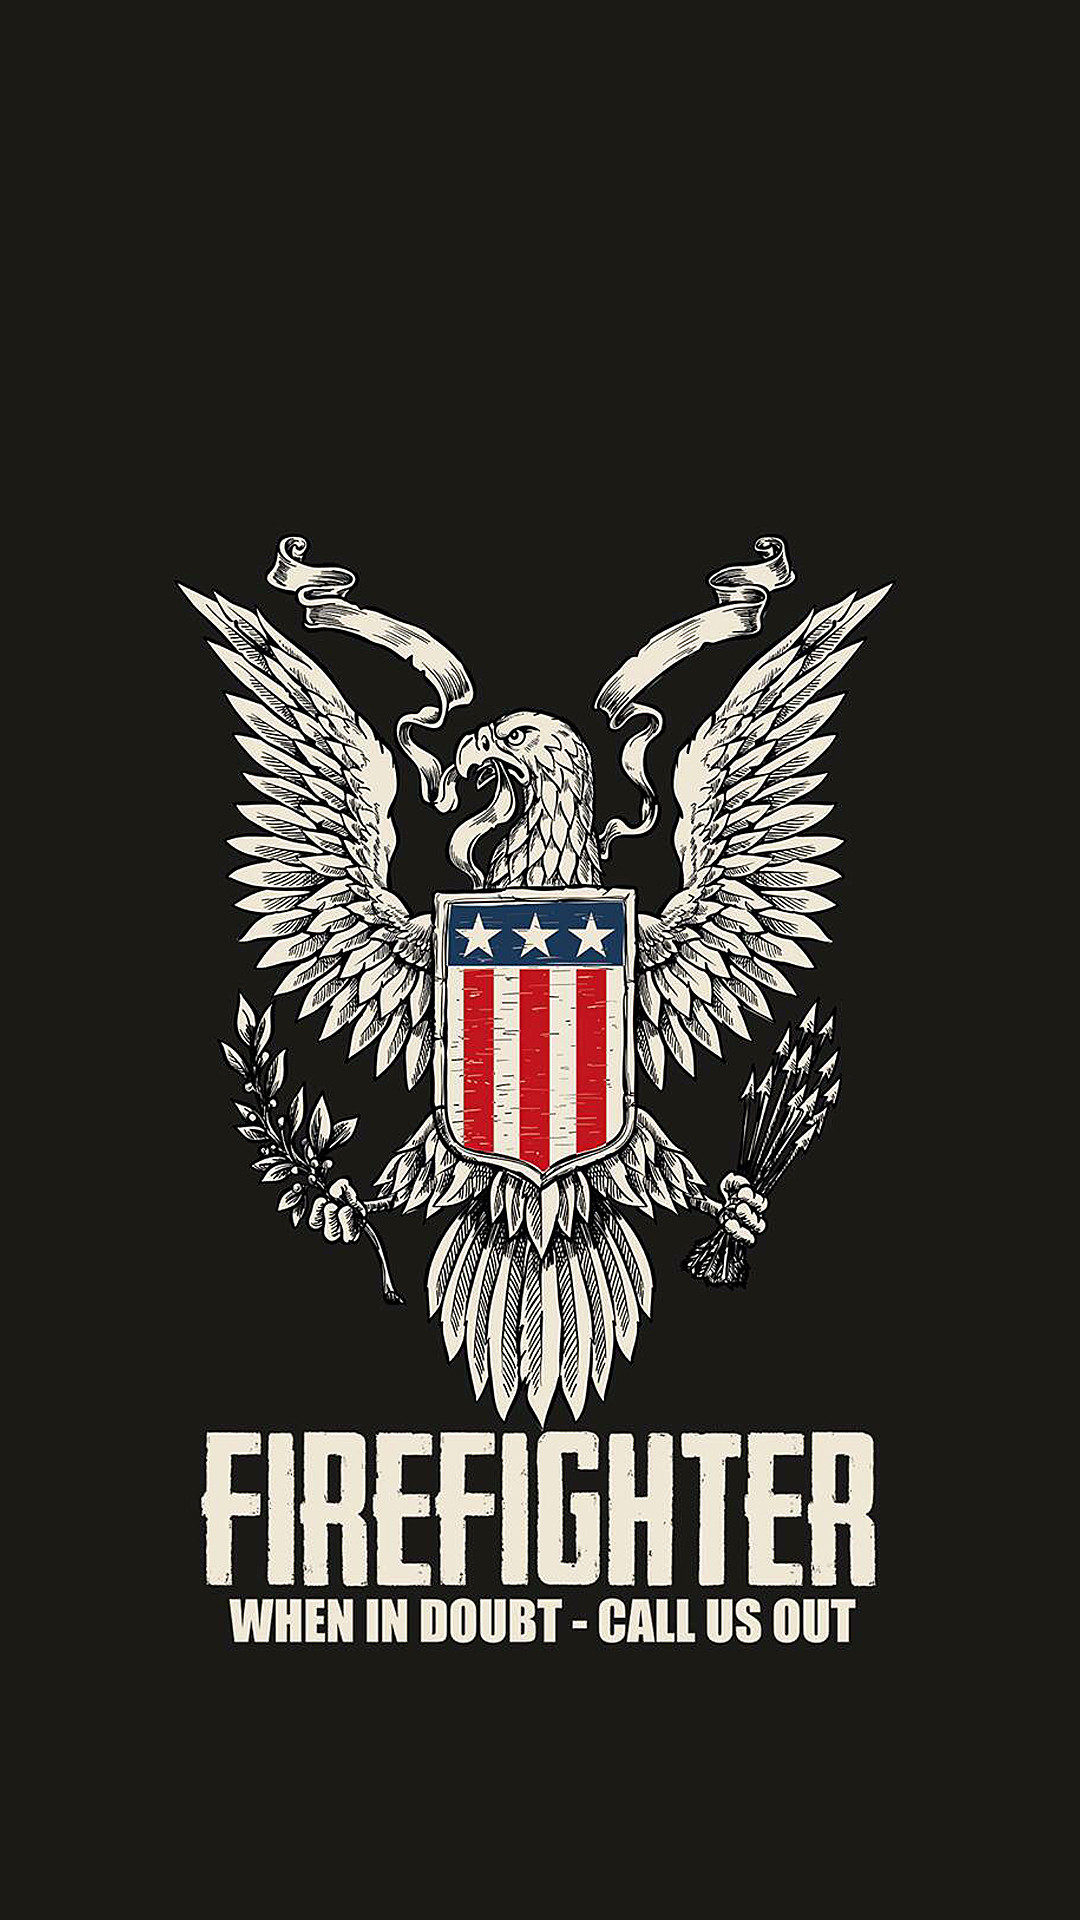 Res: 1080x1920, Firefighter Wallpaper New iPhone 6 7 Plus Wallpaper Request Thread Page 45